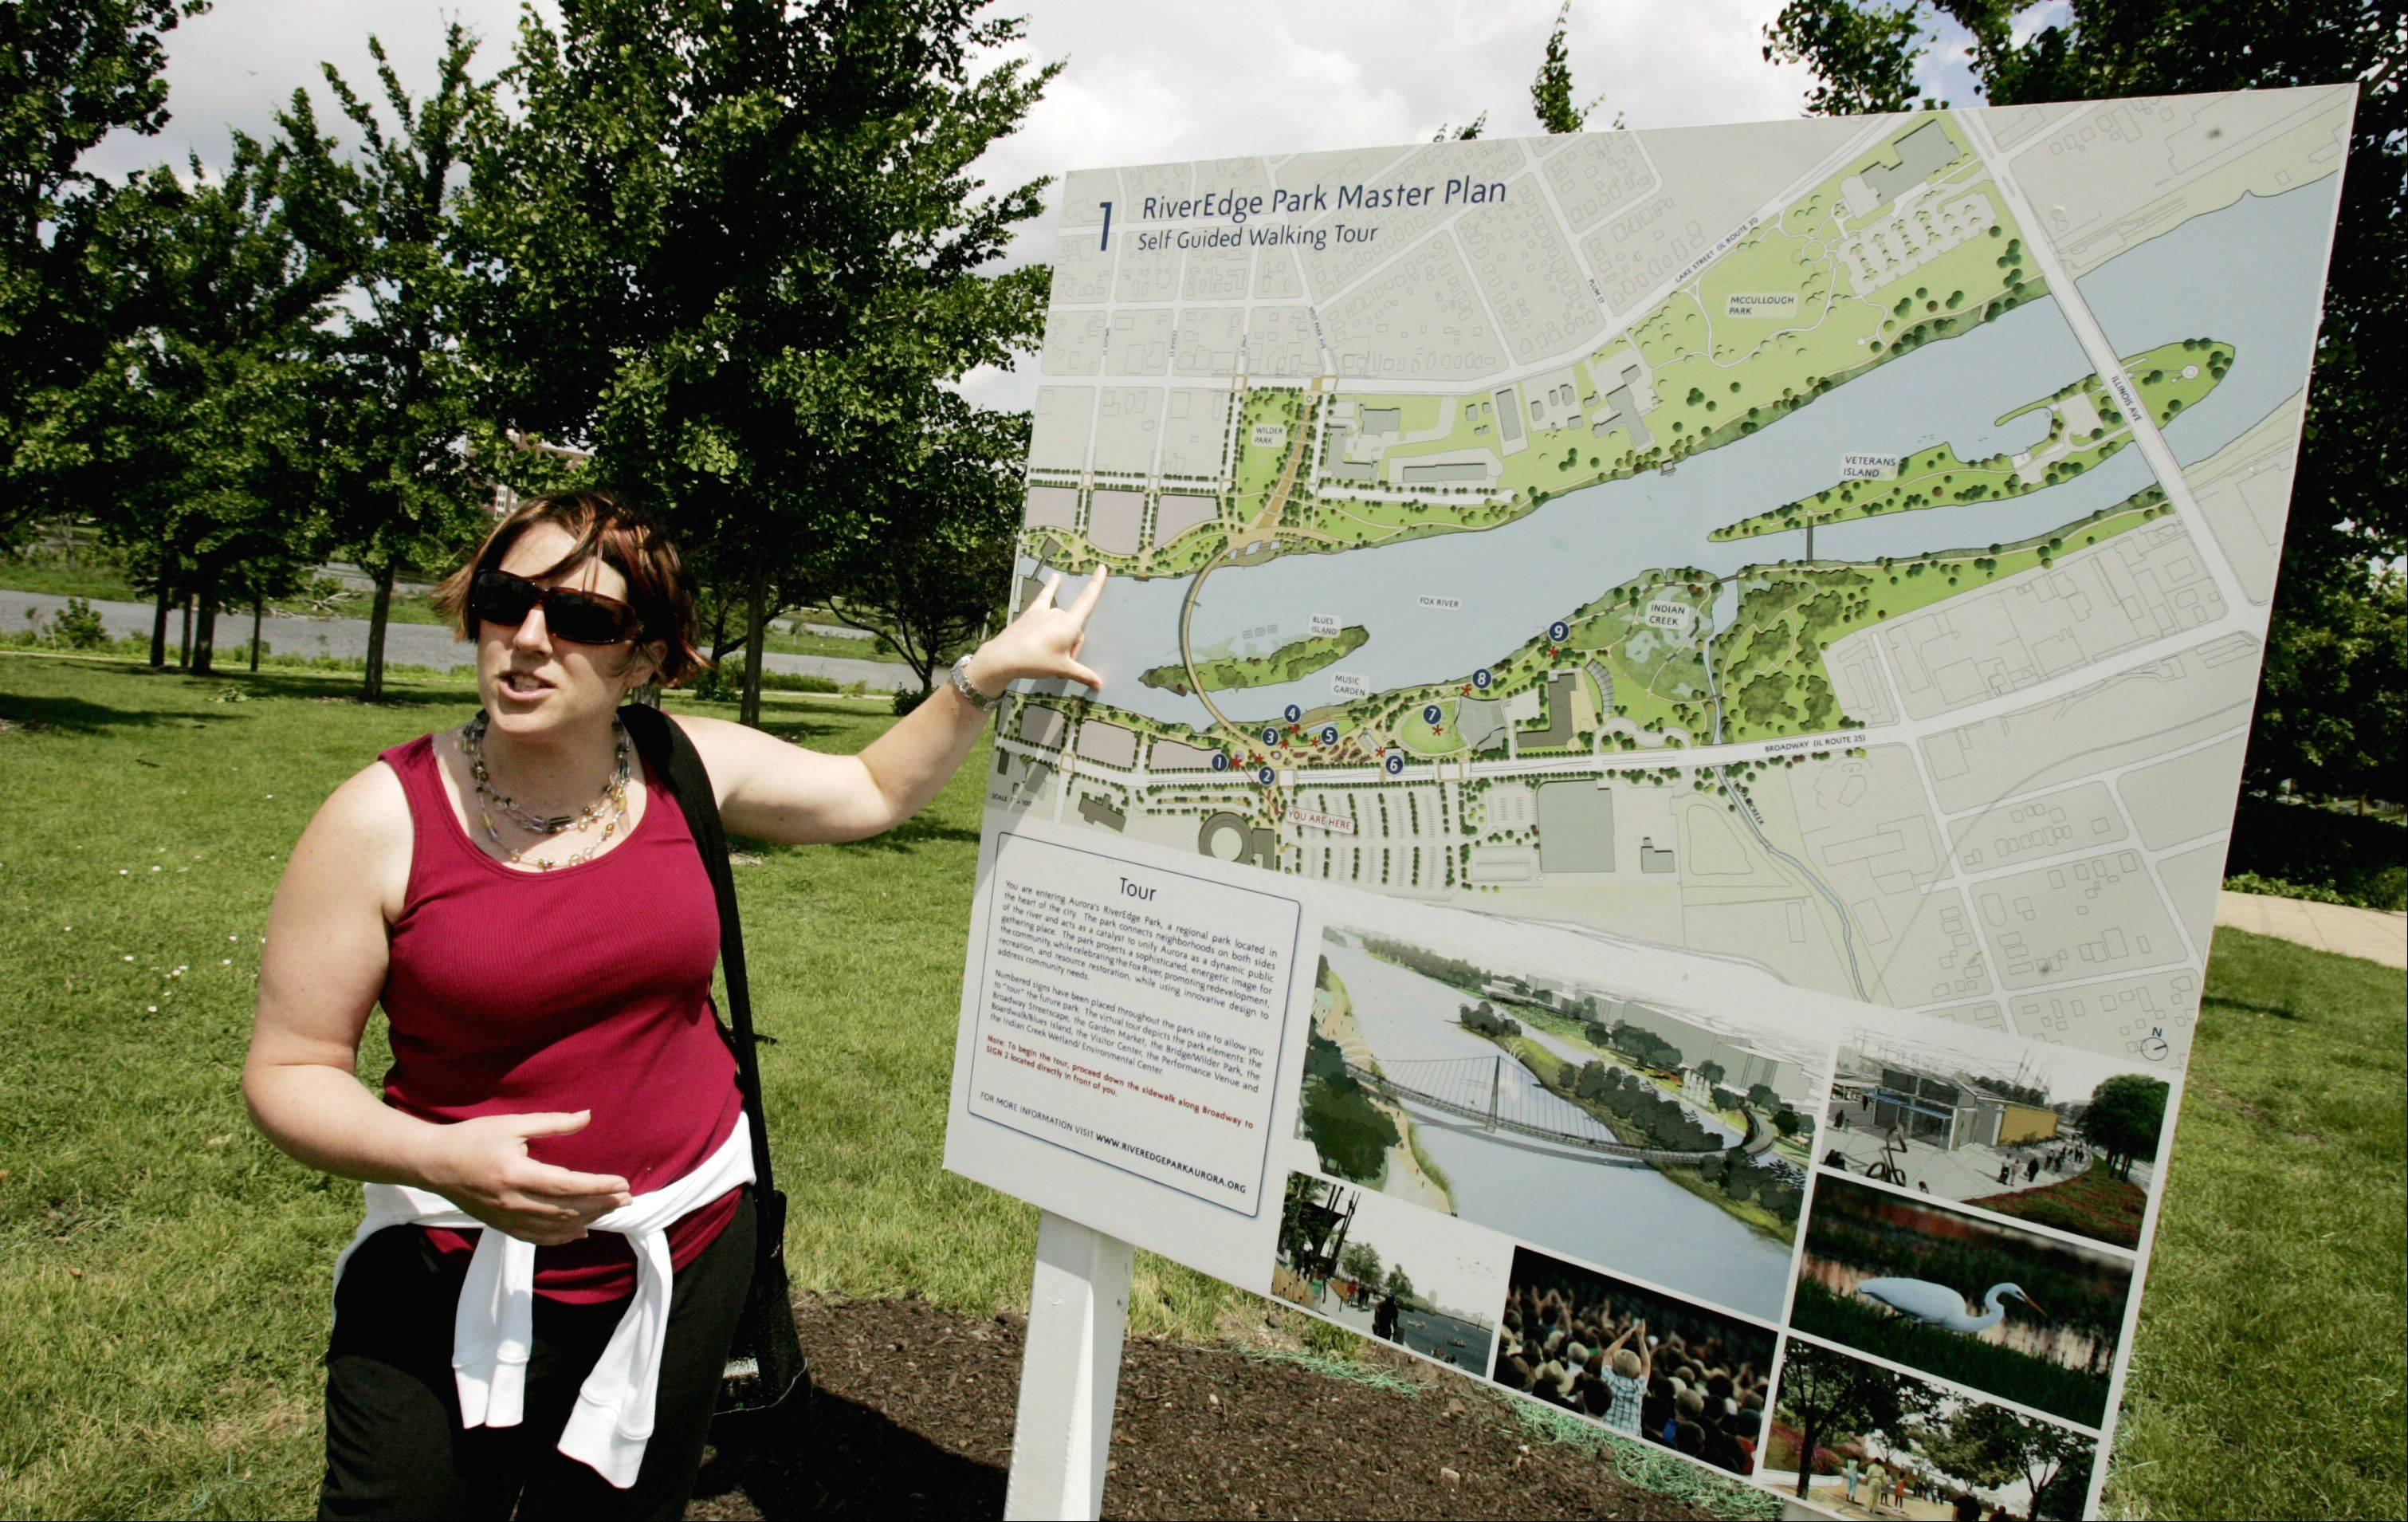 Aurora planning and zoning Director Stephane Phifer shows RiverEdge Park and a view of its master plan, which was approved in 2007.